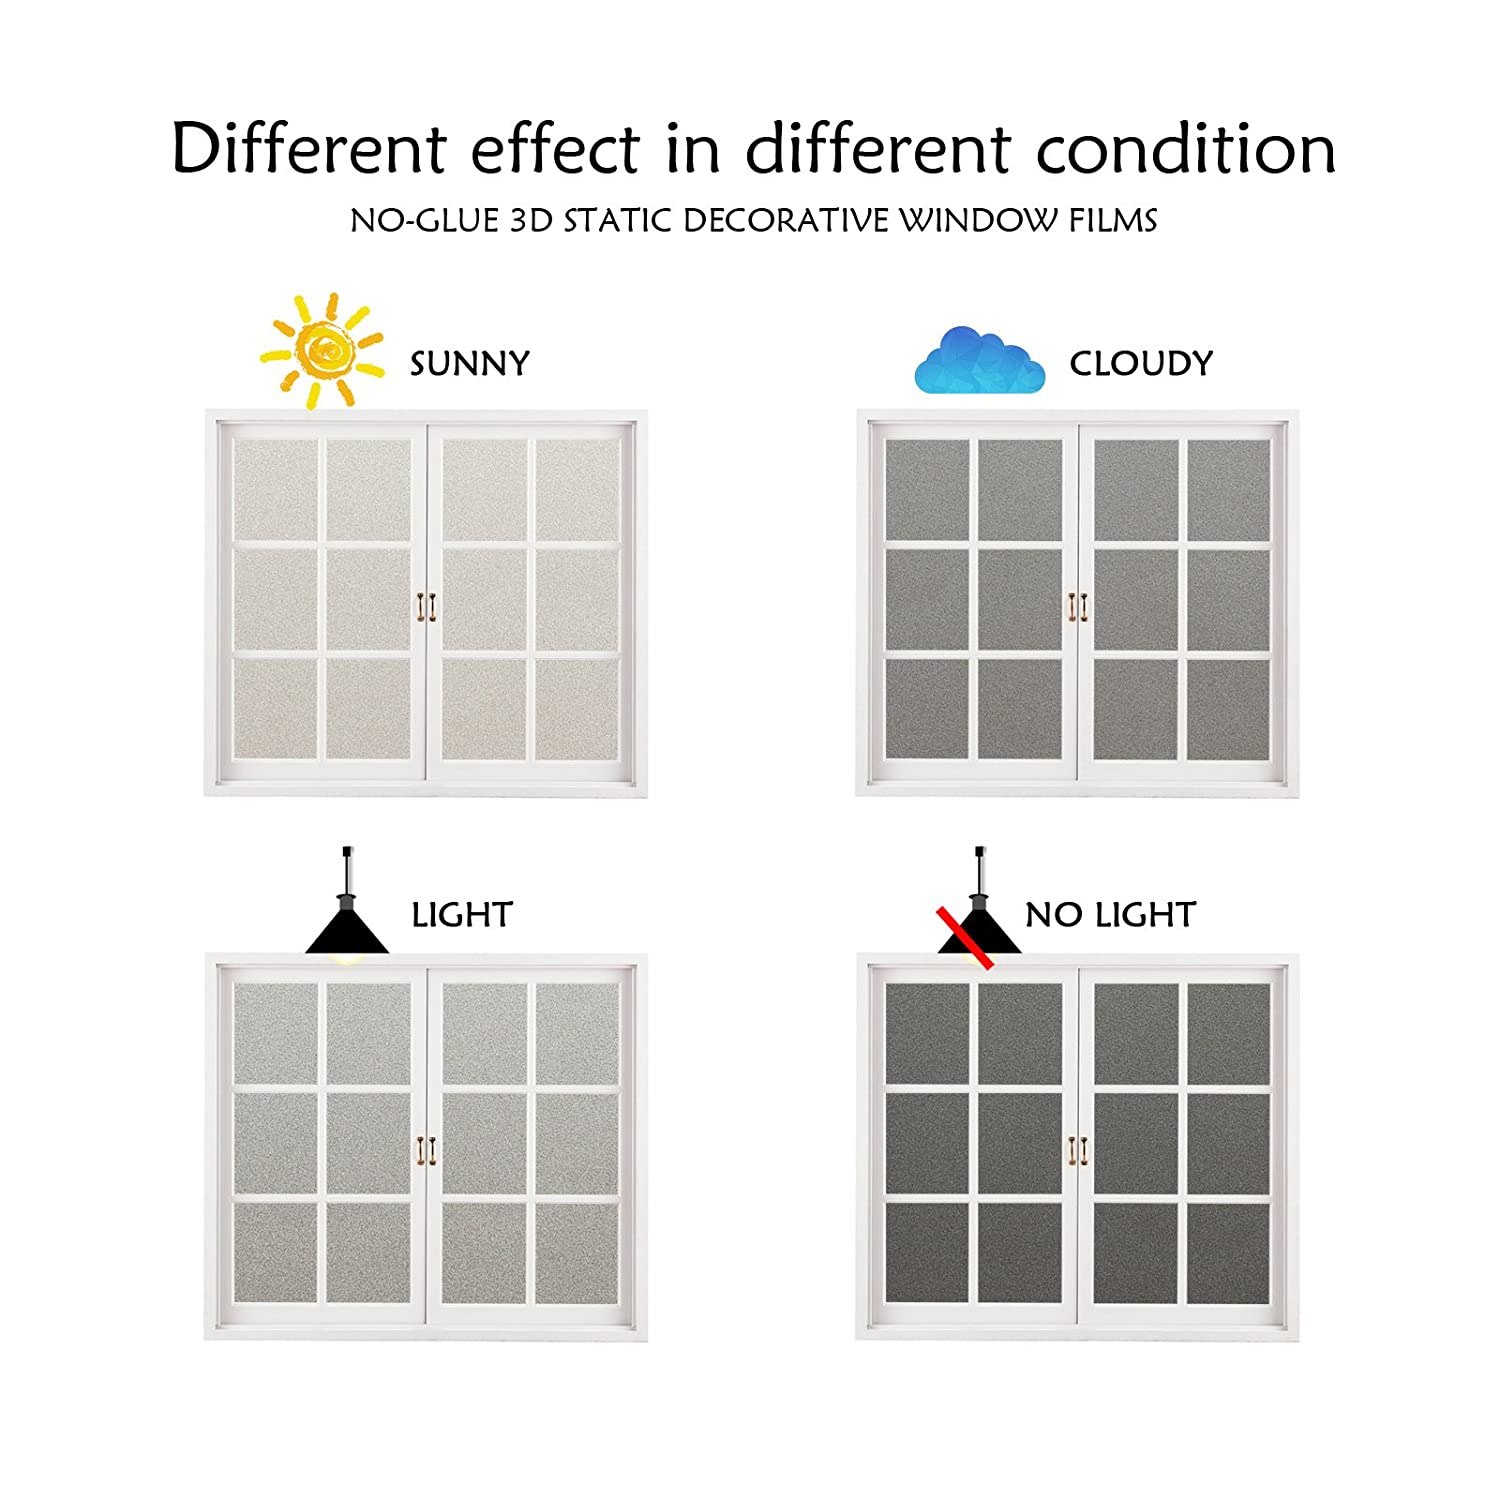 CottonColors Privacy Film 35.4x78.7 Inches Frosted Static Window Decoration Self Adhesive for UV Blocking Heat Control Glass Stickers Black Frosted